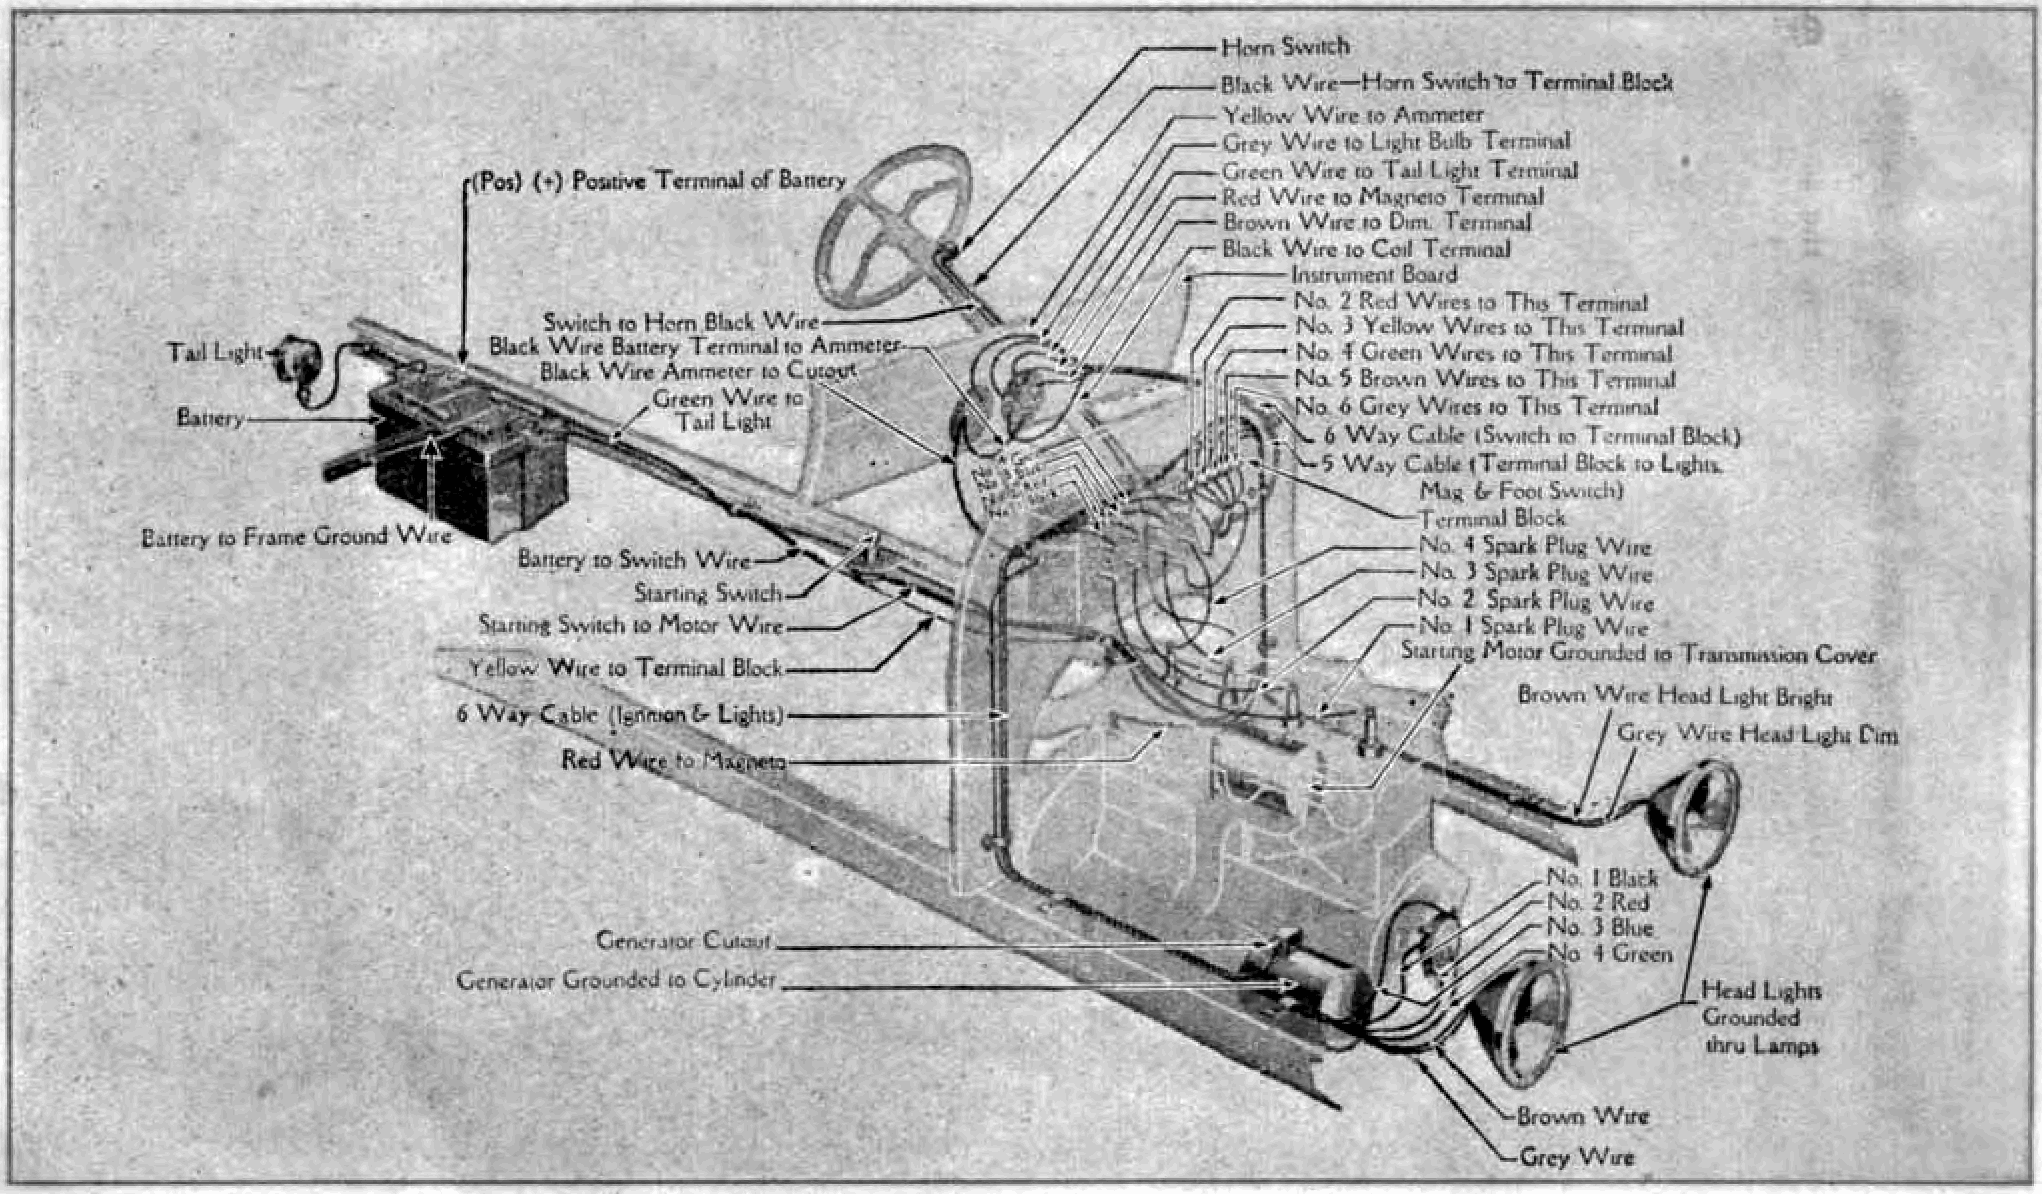 File:Ford model t 1919 d055 wiring diagram of cars equipped with a ...